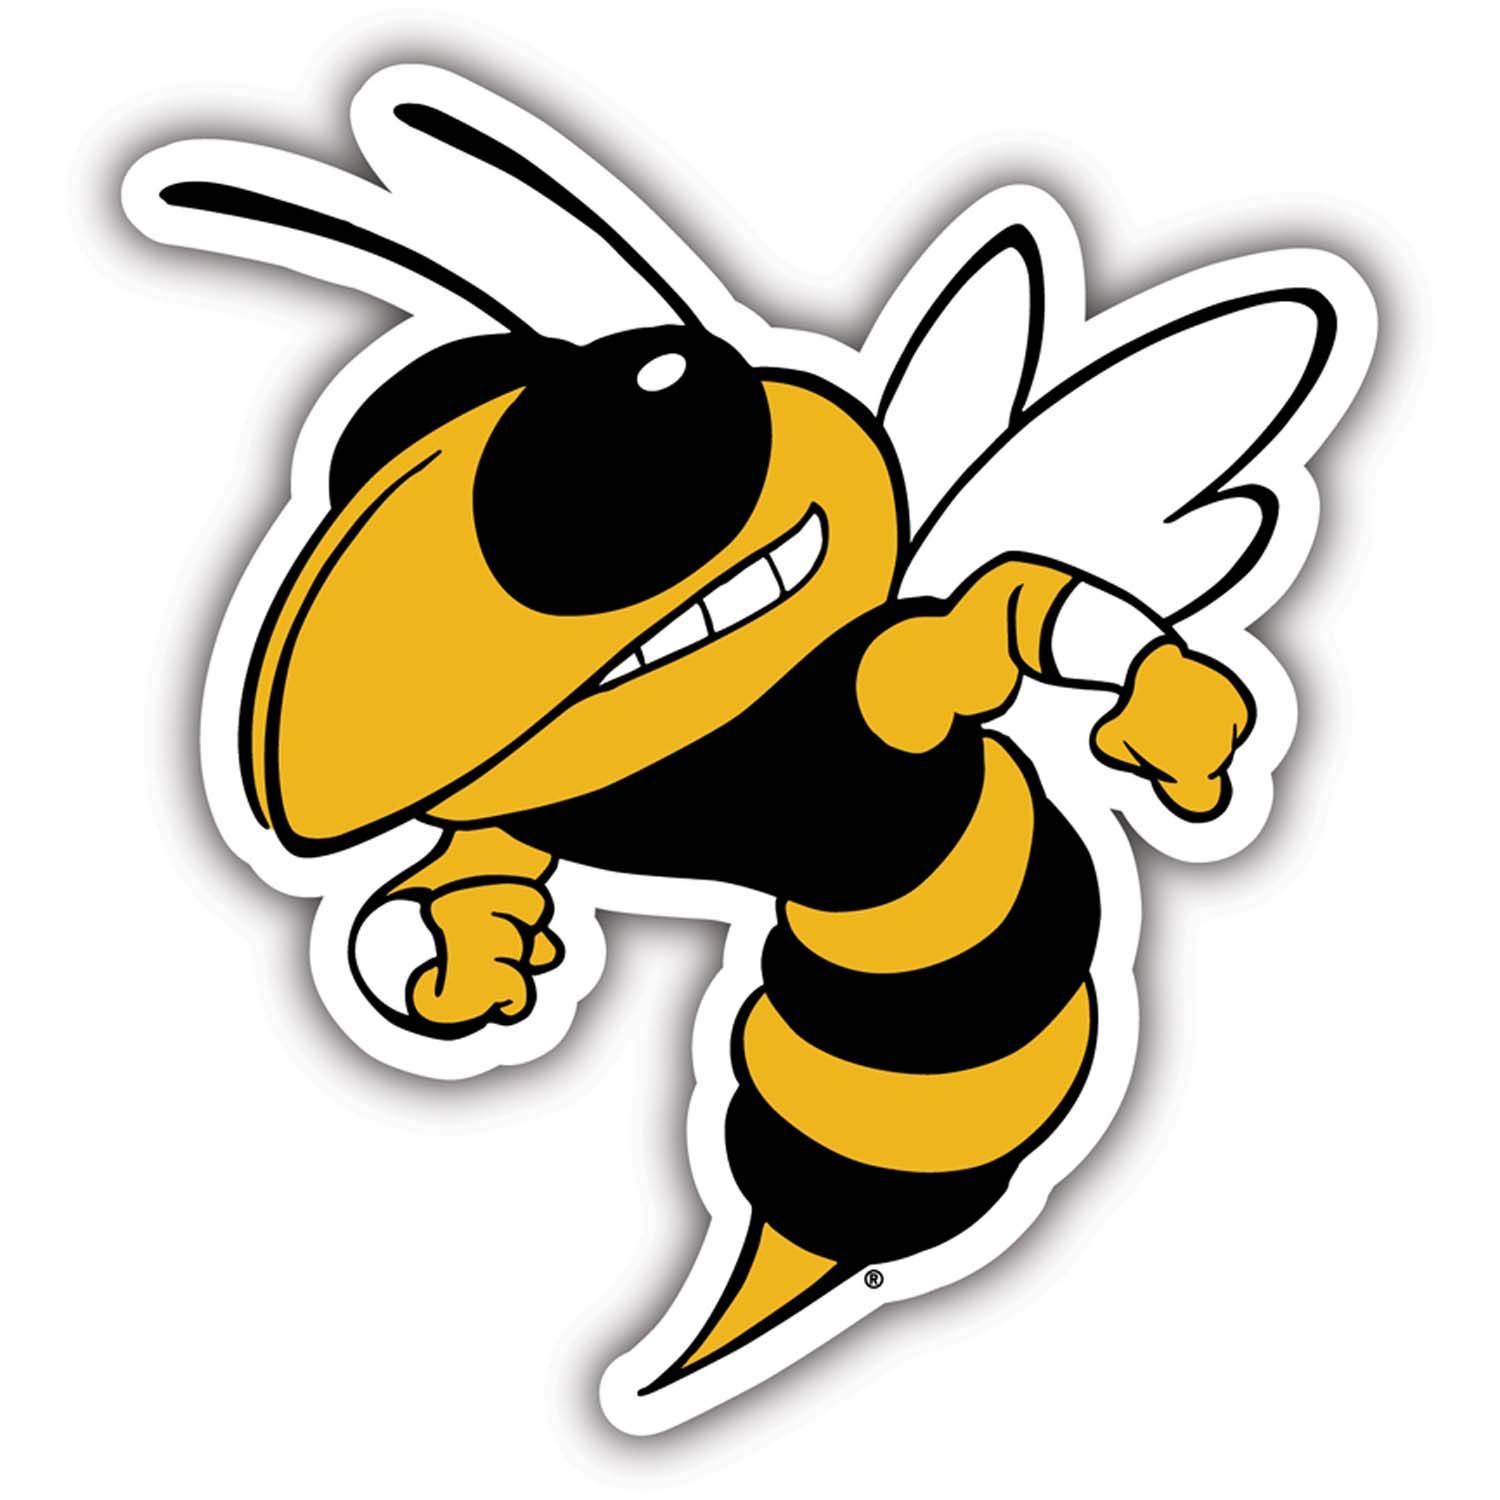 Black and white georgia tech football team clipart clip art library stock Georgia Tech Yellow Jackets Vinyl Magnet Set of 2 | Products/Logos ... clip art library stock